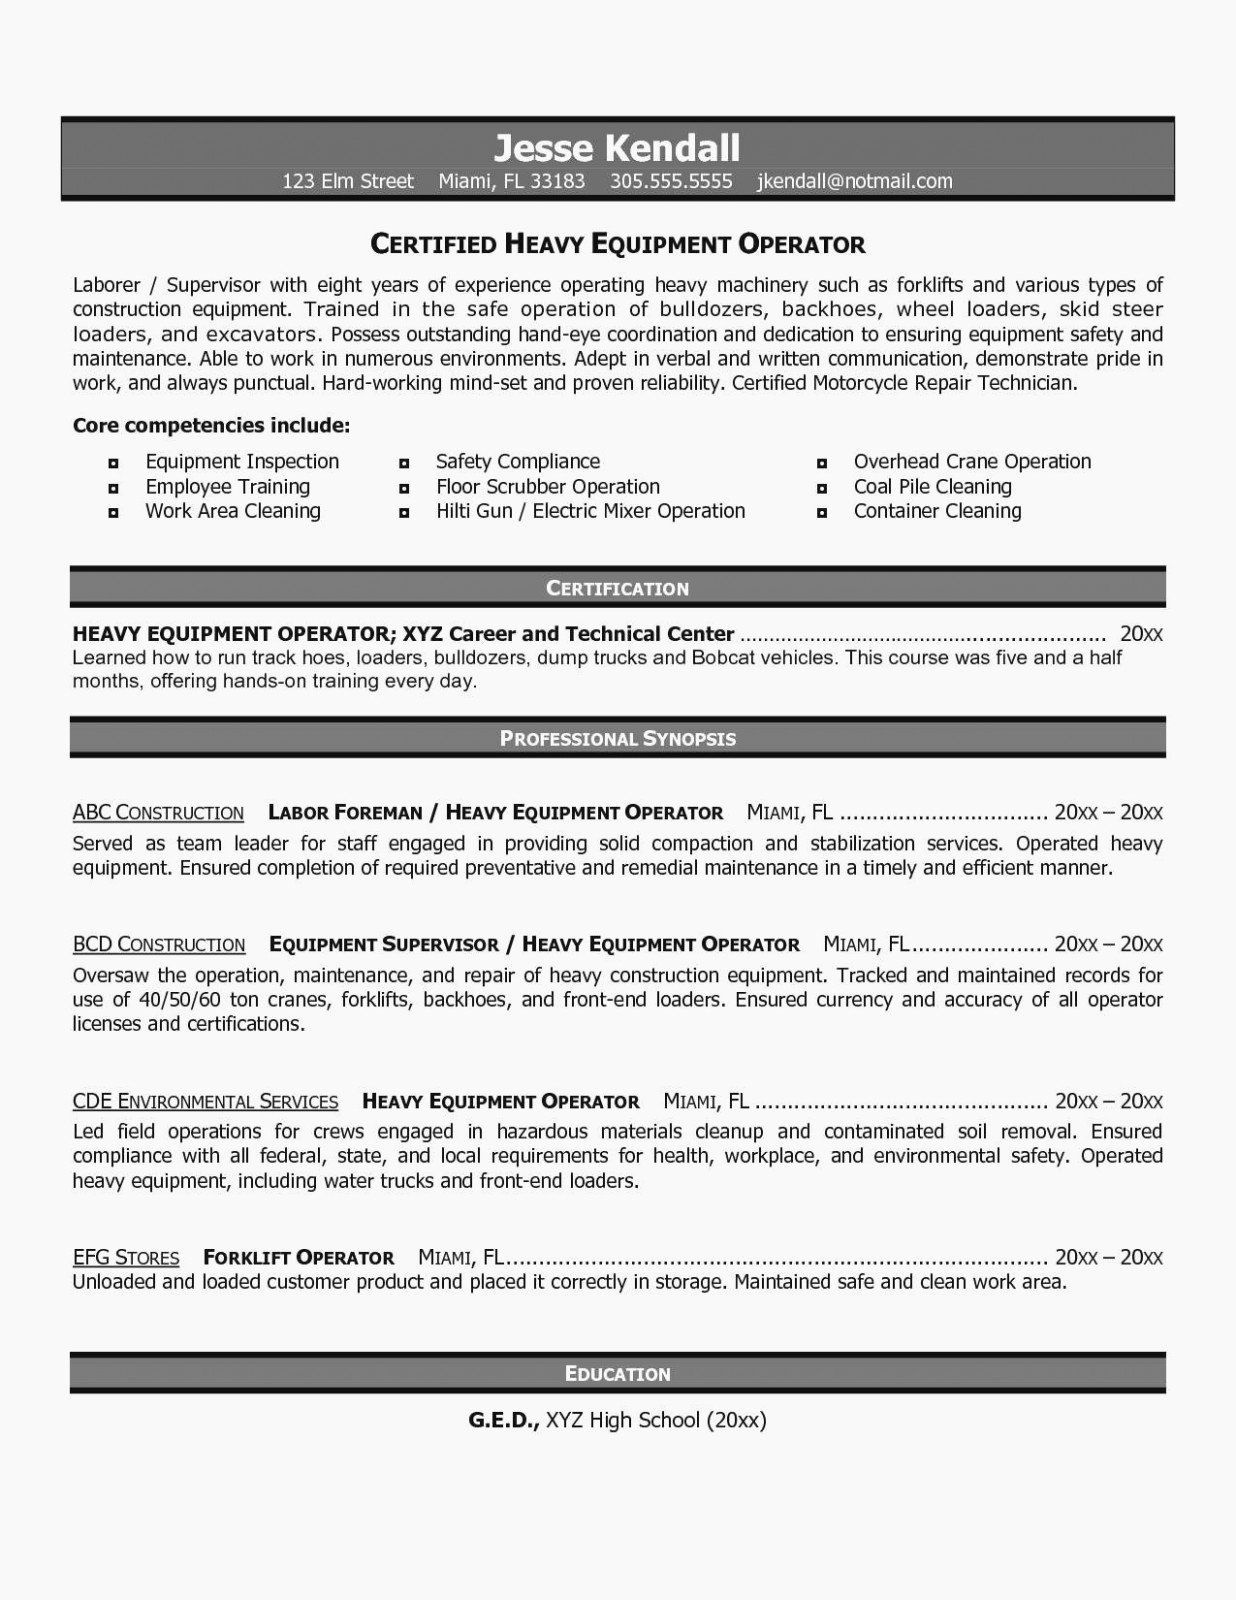 stock job description resume elegant signs you re in heavy equipment operator examples Resume Heavy Equipment Operator Supervisor Resume